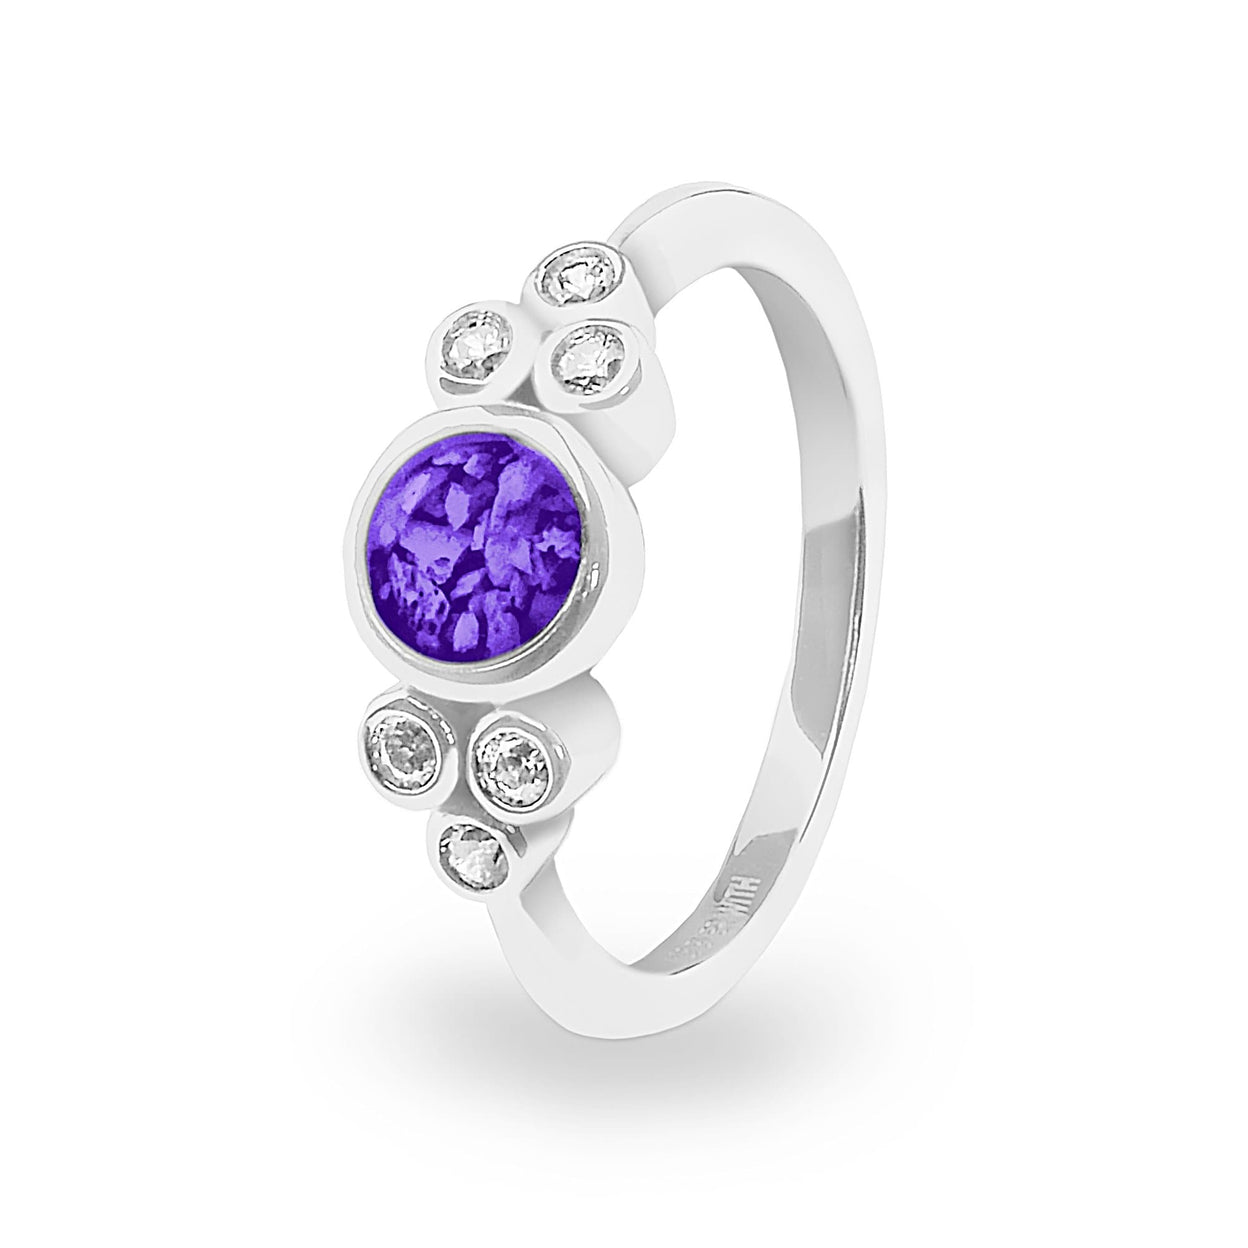 Load image into Gallery viewer, EverWith™ Ladies Praise Memorial Ashes Ring with Swarovski Crystals